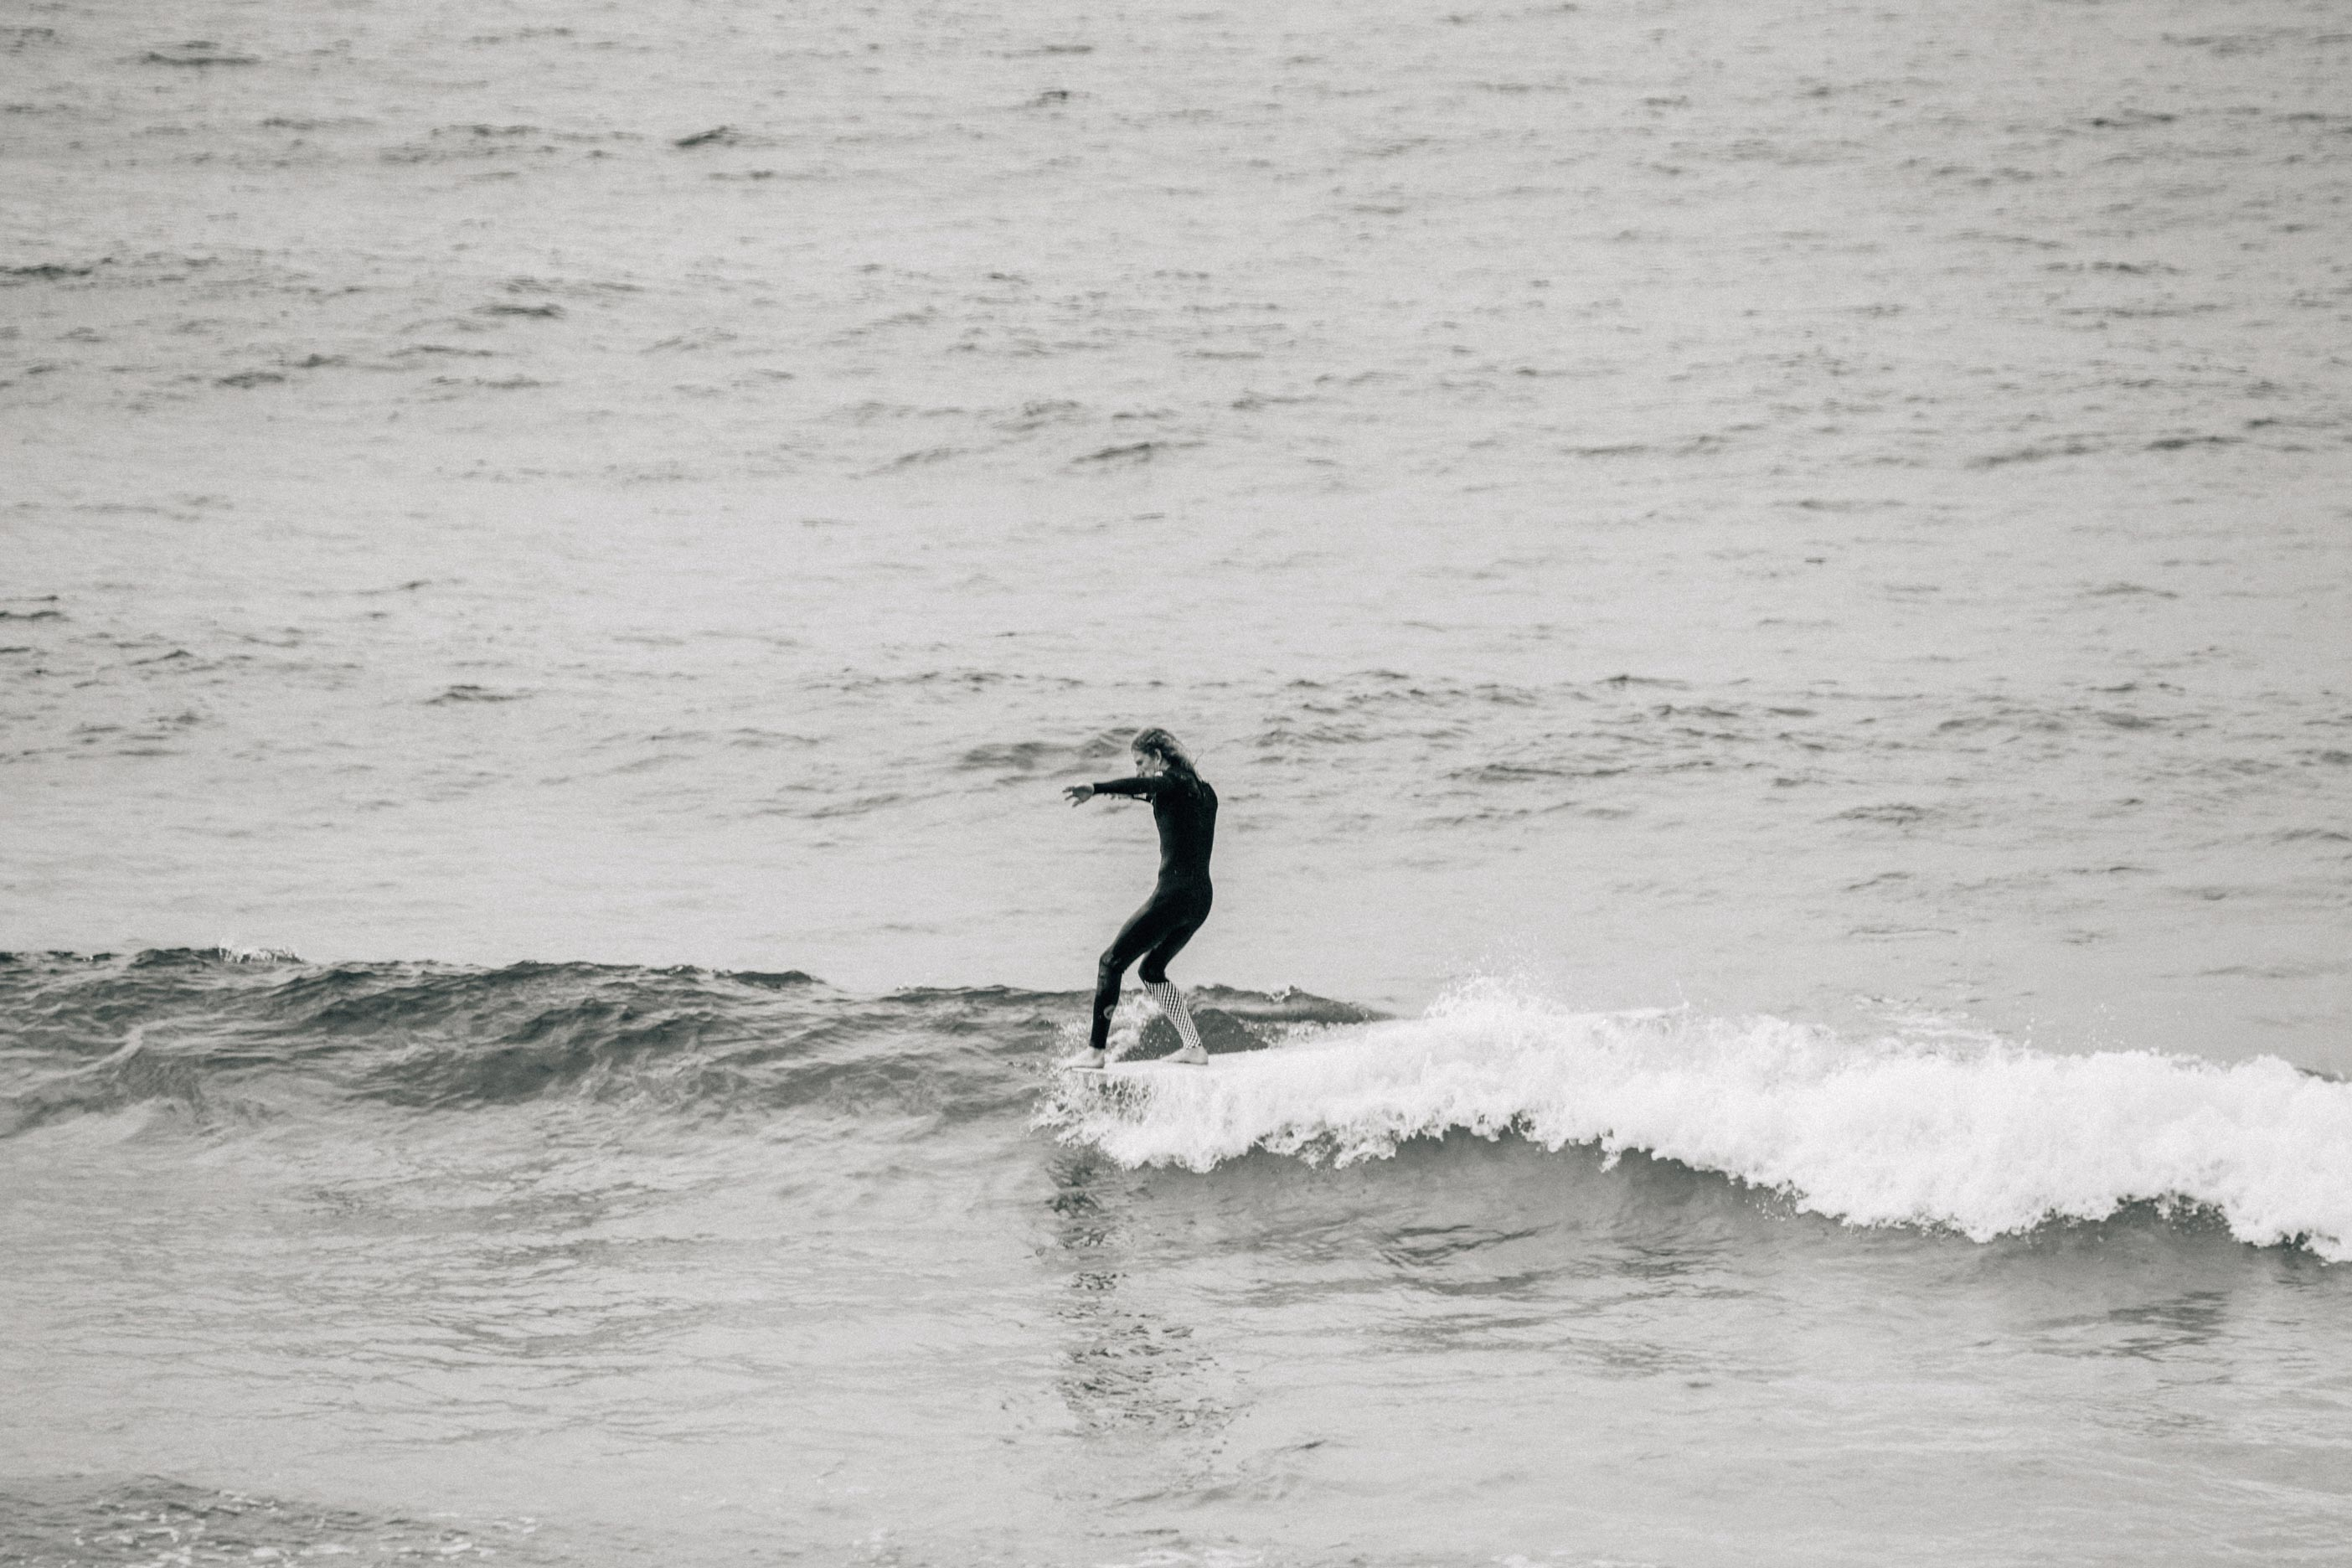 Vans + Finisterre editorial -  James Parry hangs five on a little knee-high peeler at Sennen